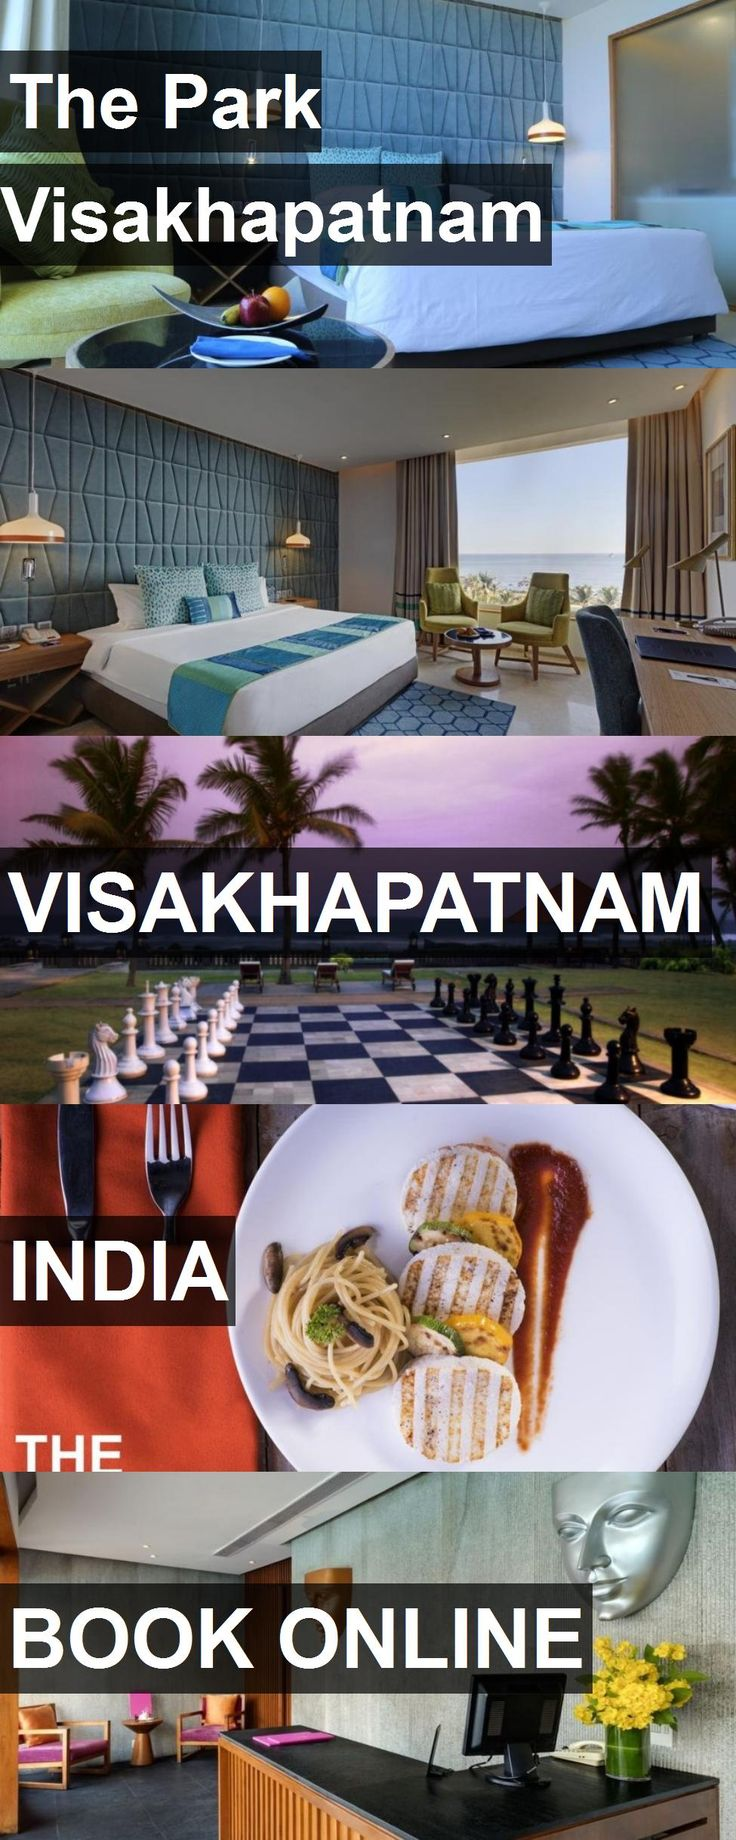 Hotel The Park Visakhapatnam in Visakhapatnam, India. For more information, photos, reviews and best prices please follow the link. #India #Visakhapatnam #travel #vacation #hotel